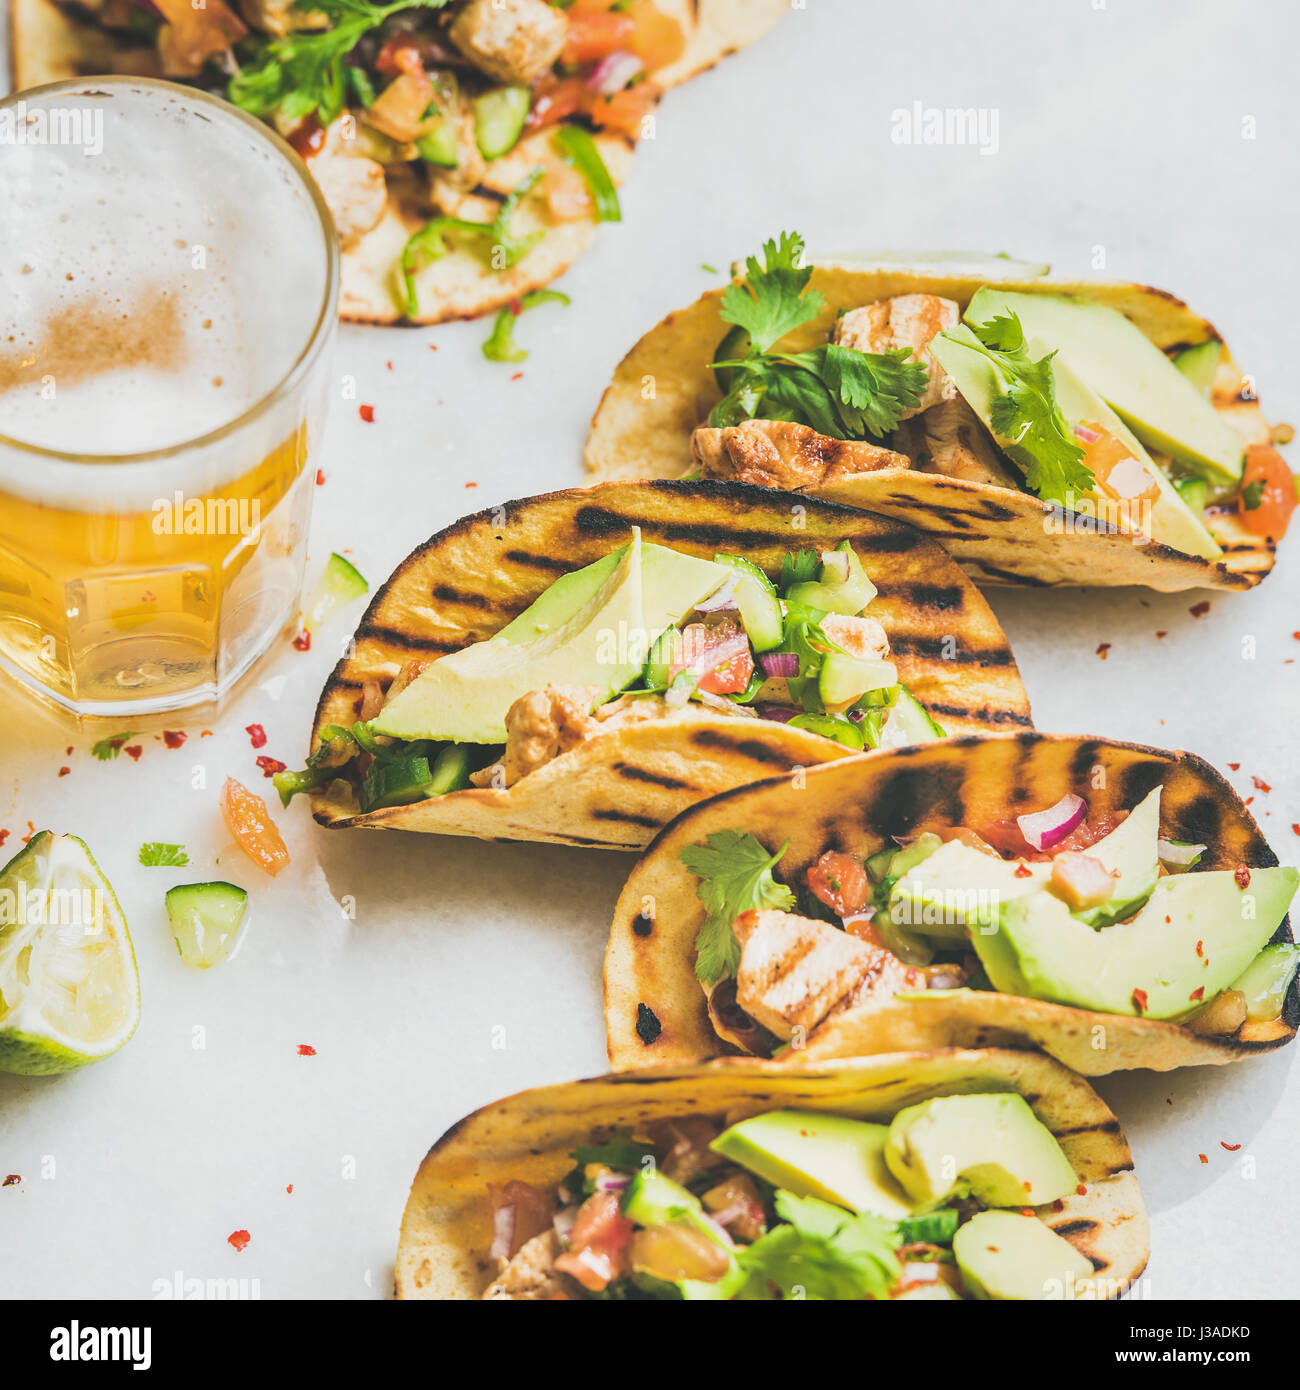 Healthy corn tortillas with grilled chicken, avocado, fresh salsa, limes, beer in glass over light grey marble background, - Stock Image